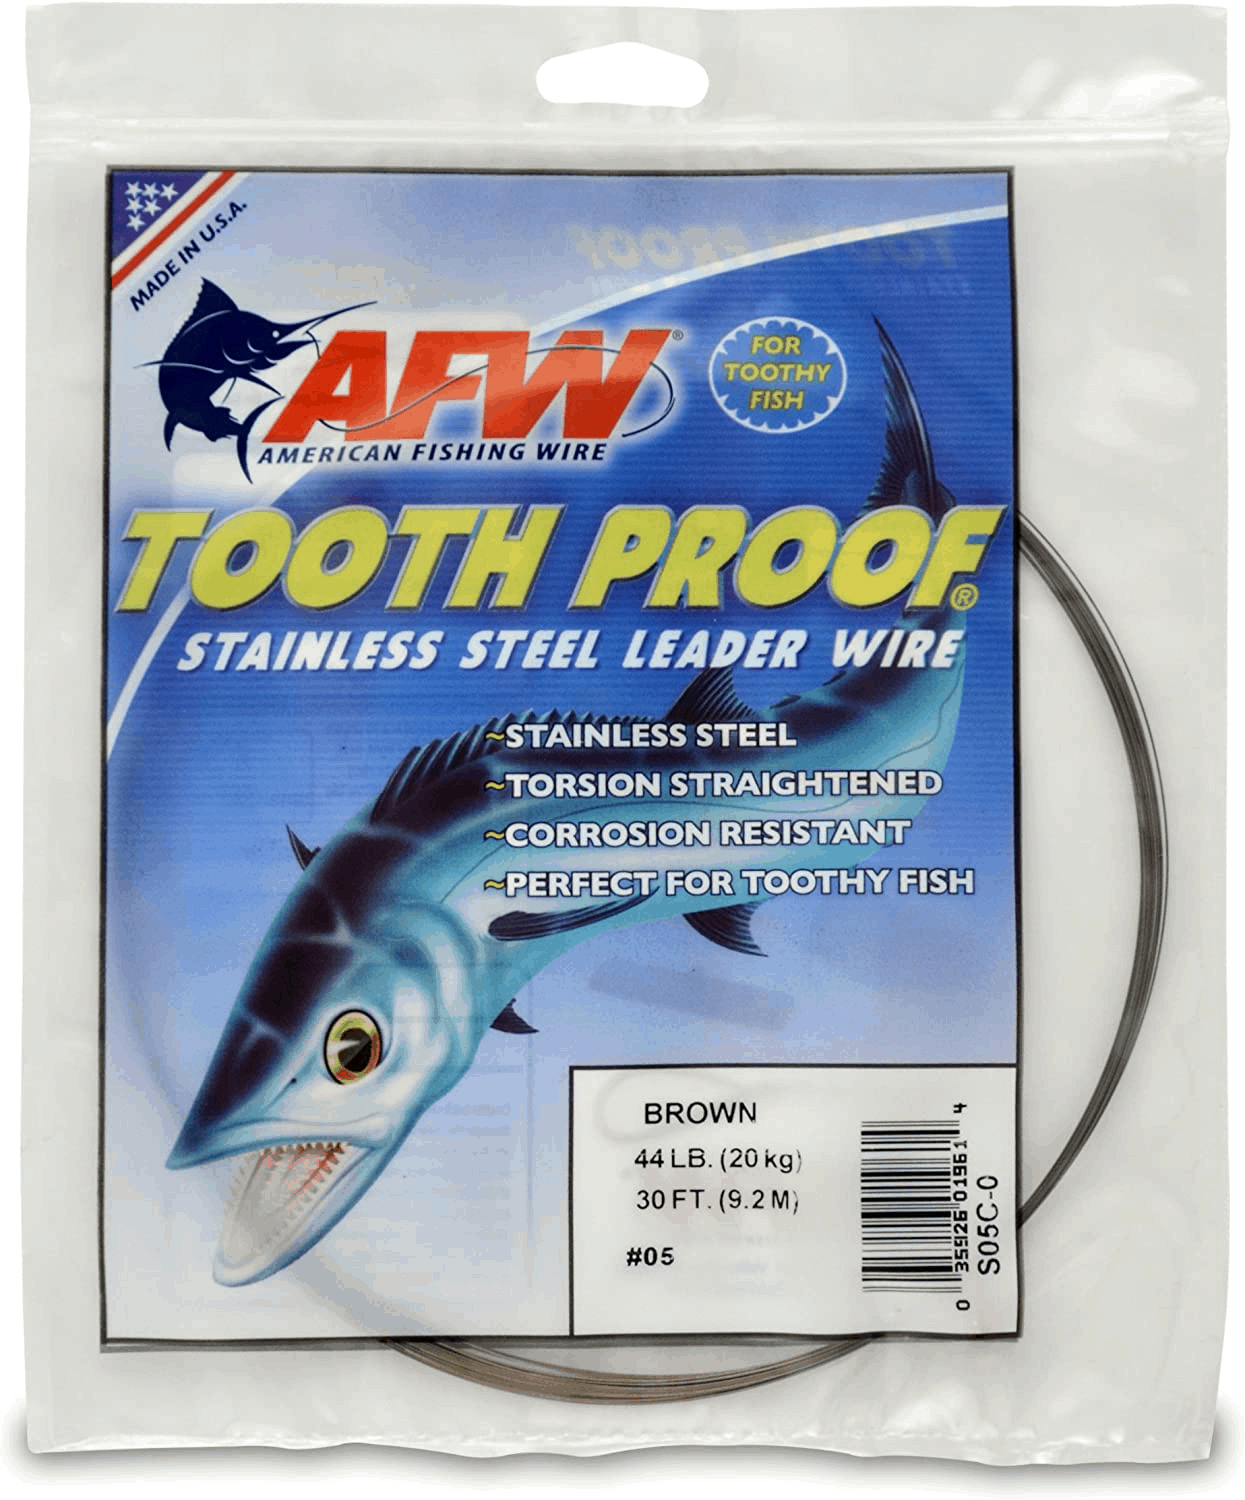 AFW's Tooth Proof Stainless Steel Single Strand Leader Wire